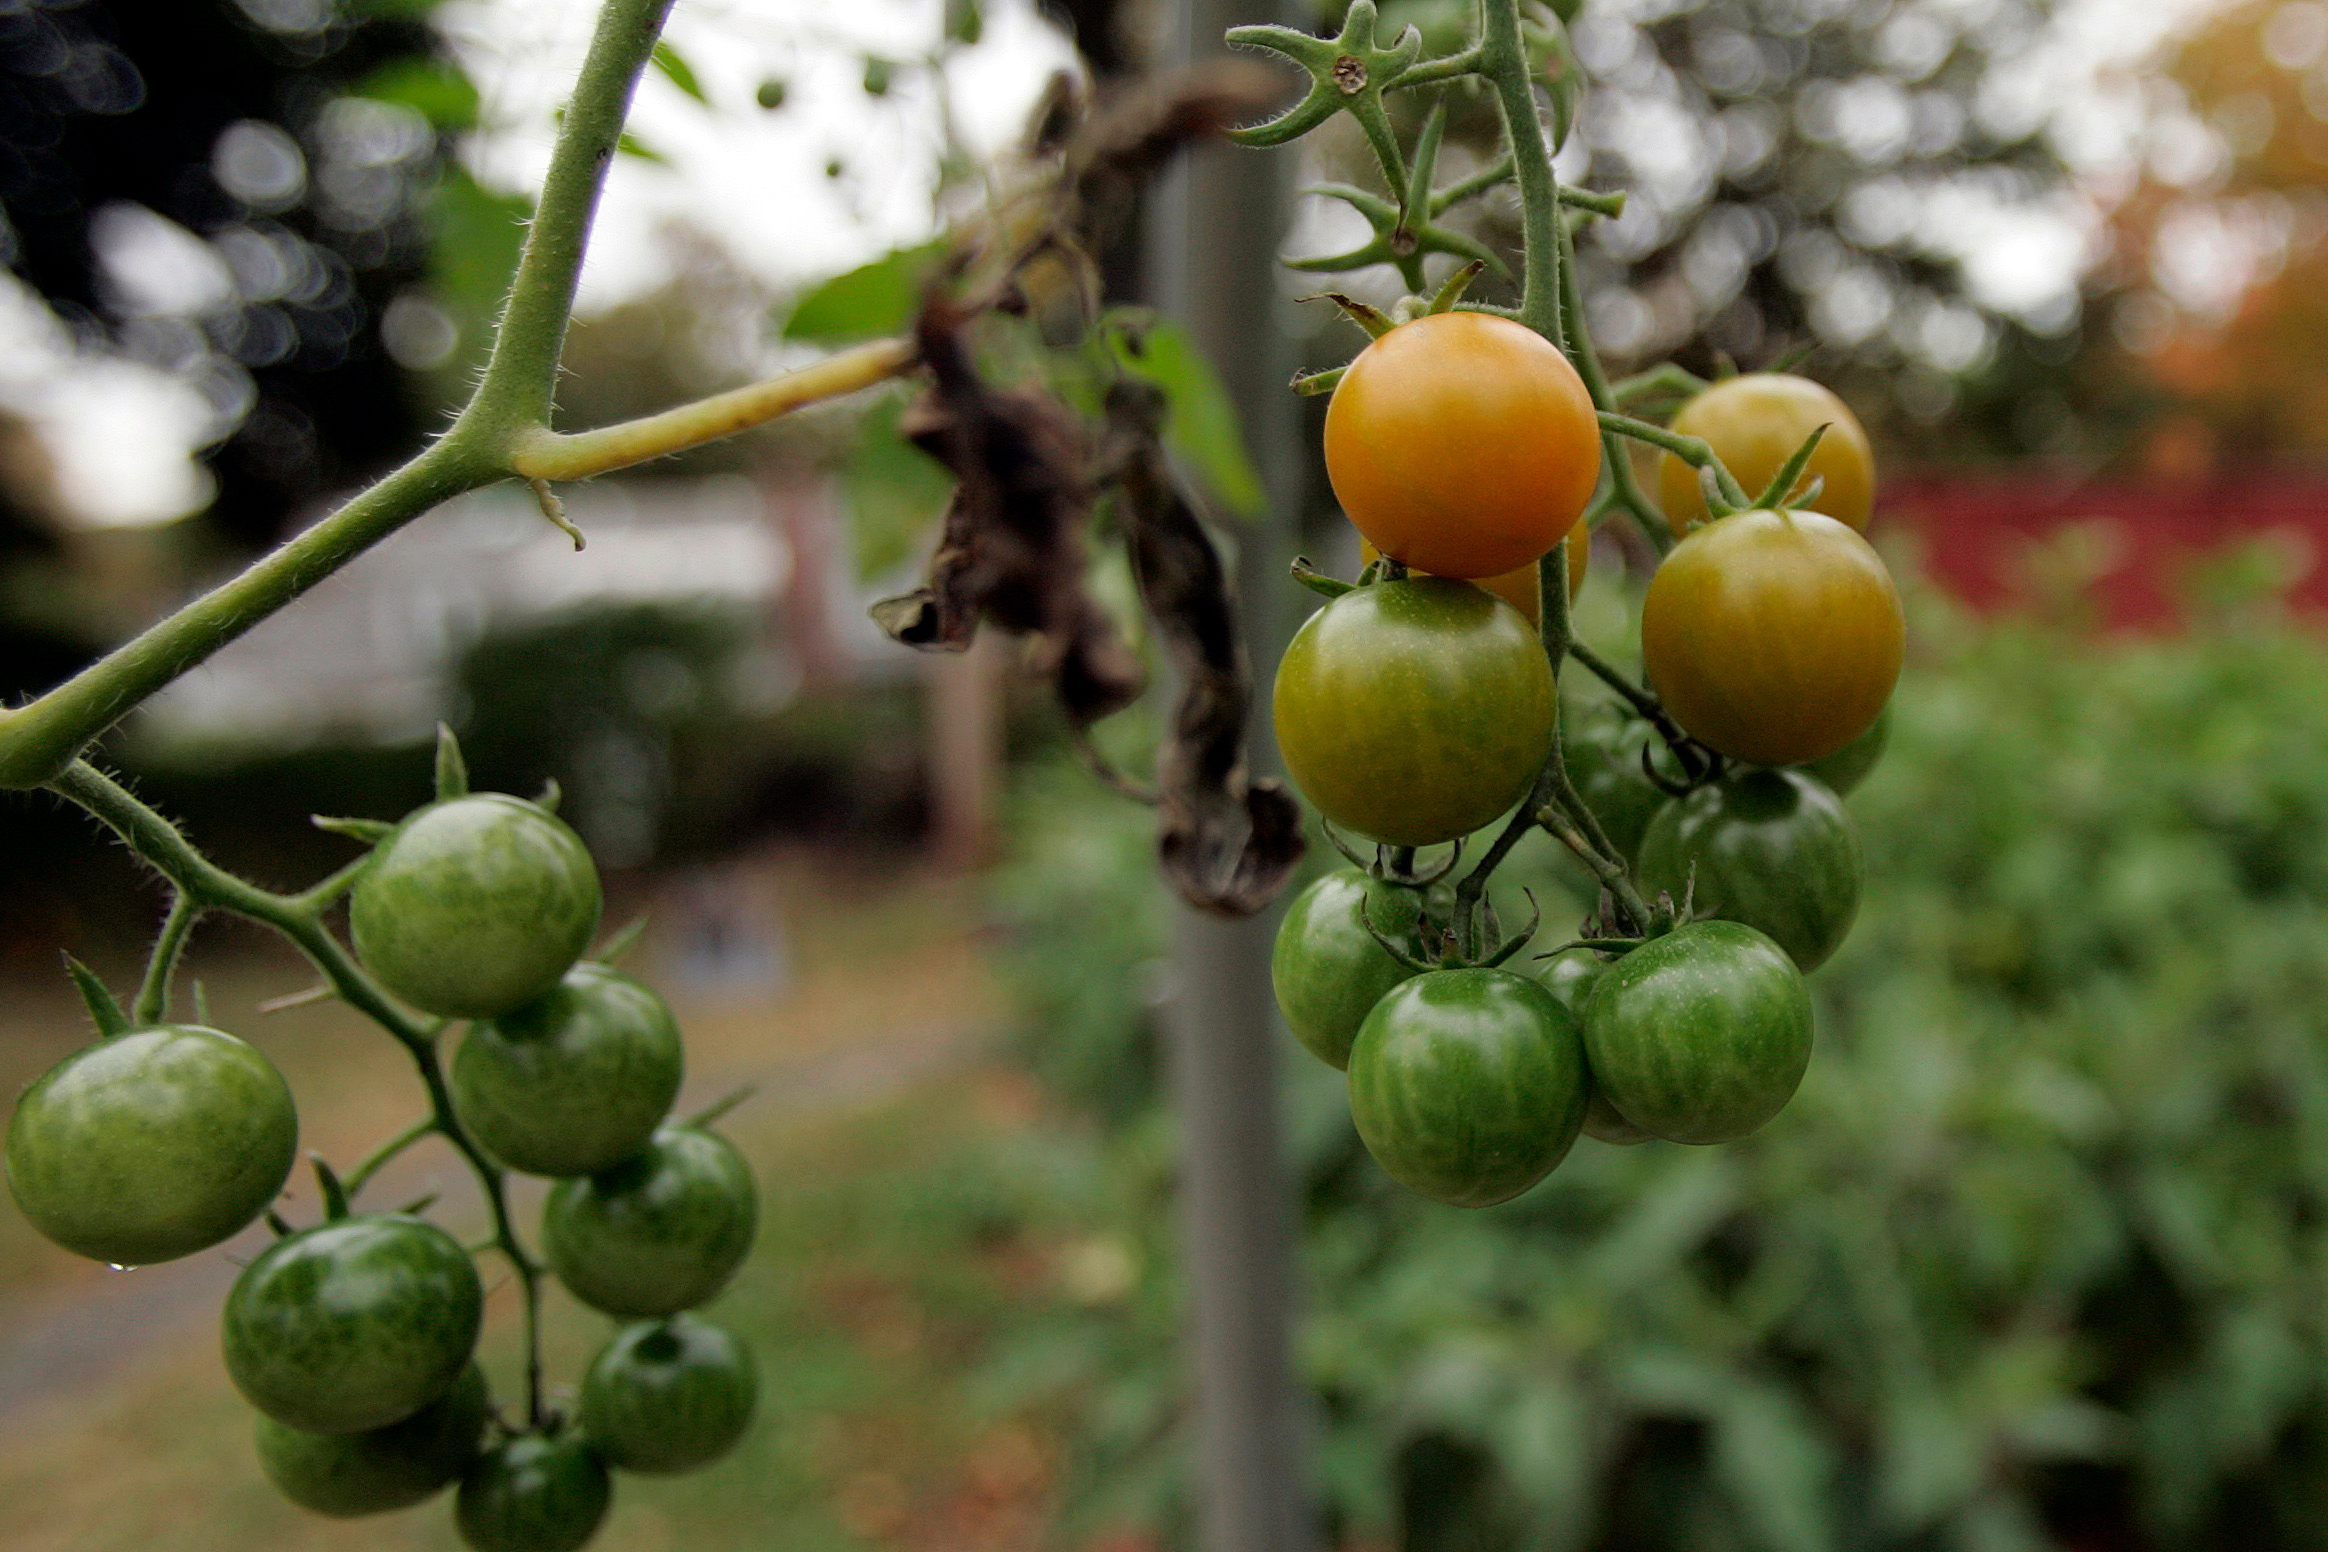 Organically grown tomatoes hang from a vine at the organic garden on the edge of the Yale University campus in New Haven, Conn., Wednesday, Oct. 24, 2007.